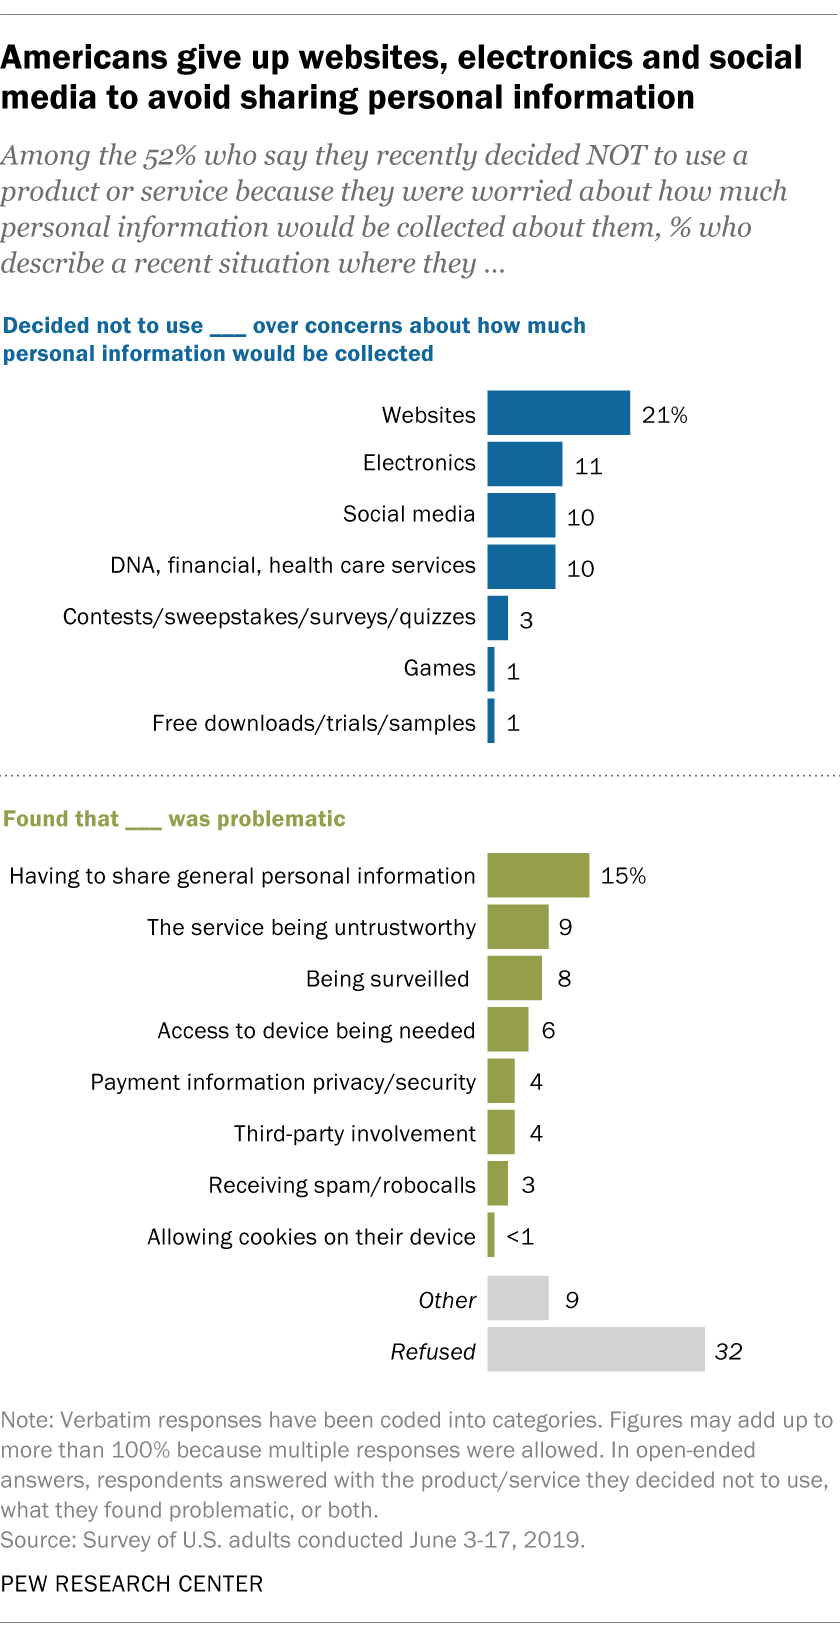 Americans give up websites, electronics and social media to avoid sharing personal information